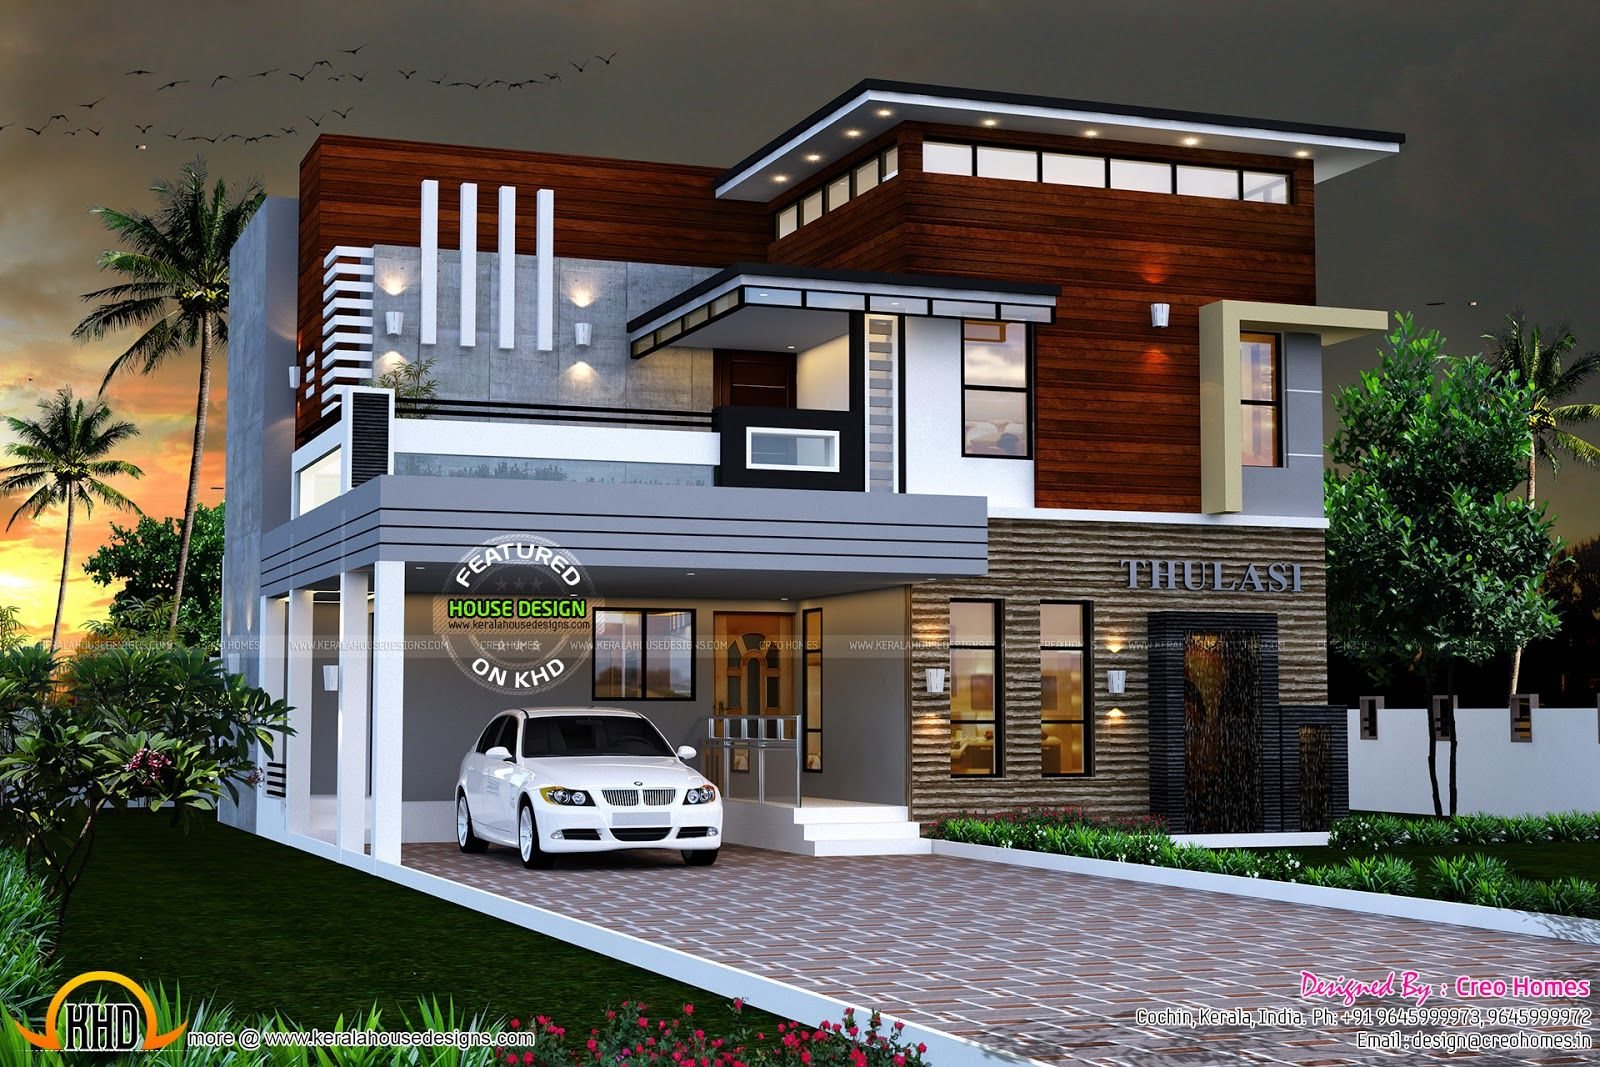 Eterior design modern small house architecture building Contemporary house blueprints